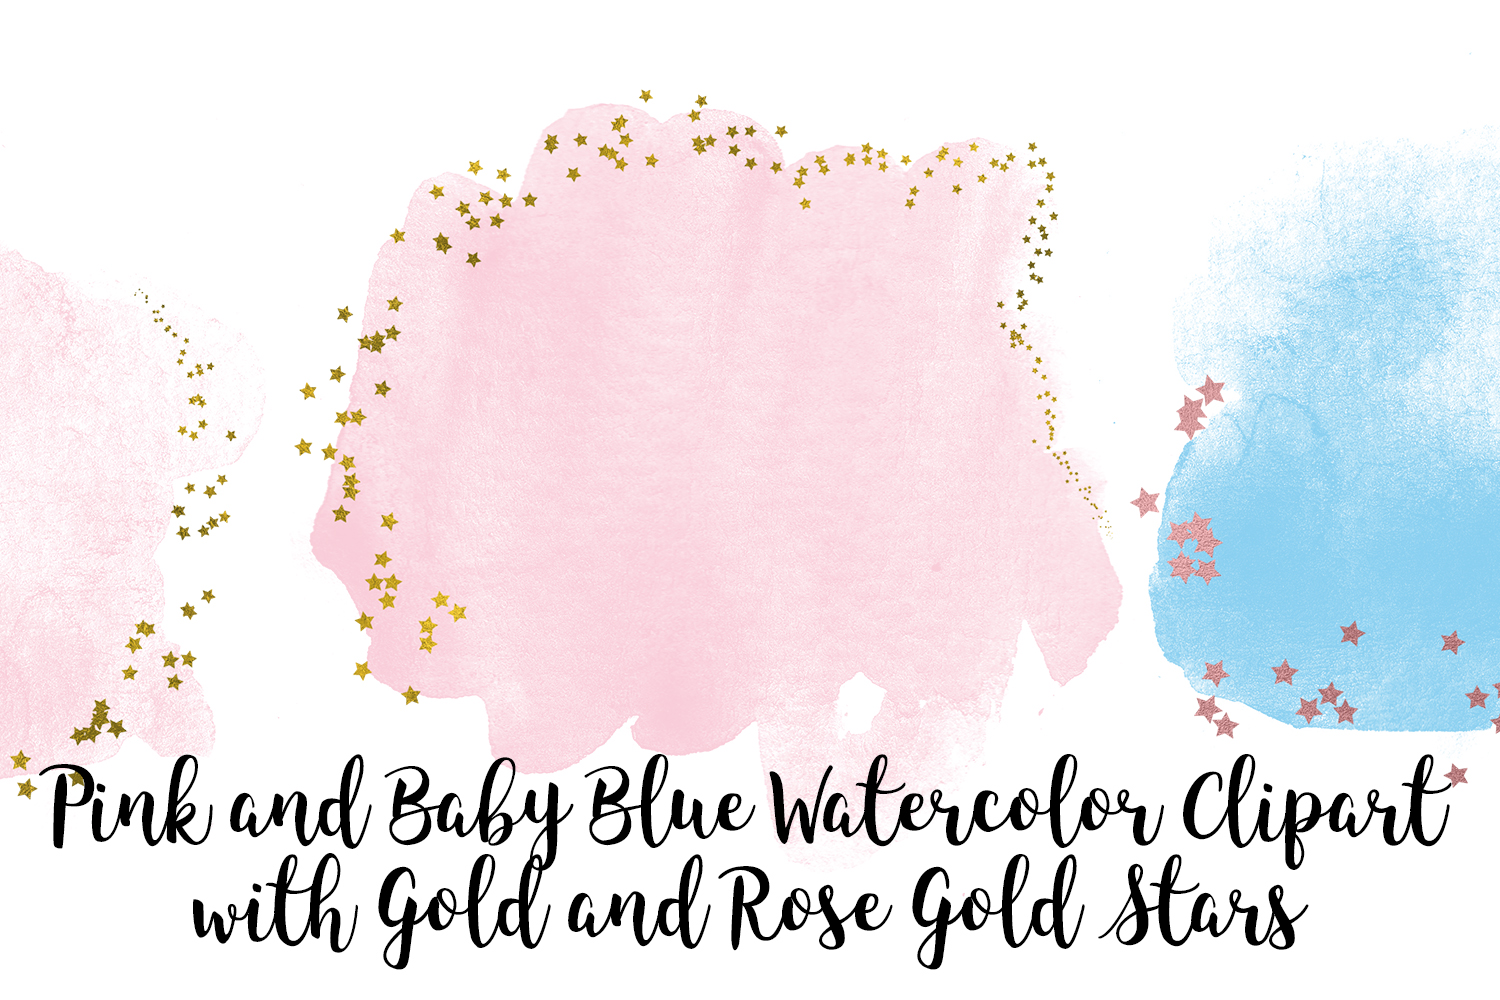 Pink and Baby Blue Watercolor Clip Art, Gold and Rose Gold example image 1